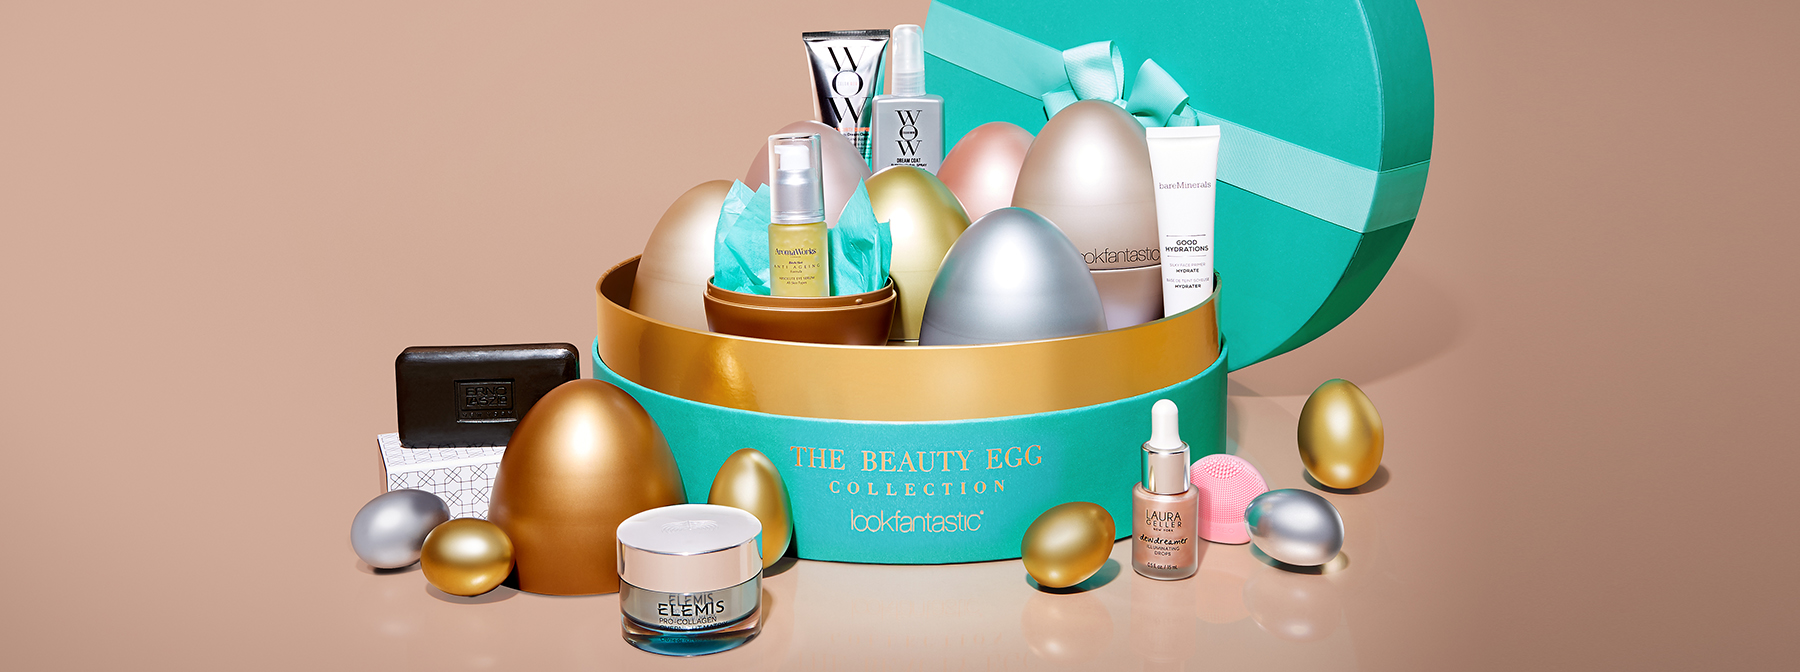 Discover The Beauty Egg Collection 2019